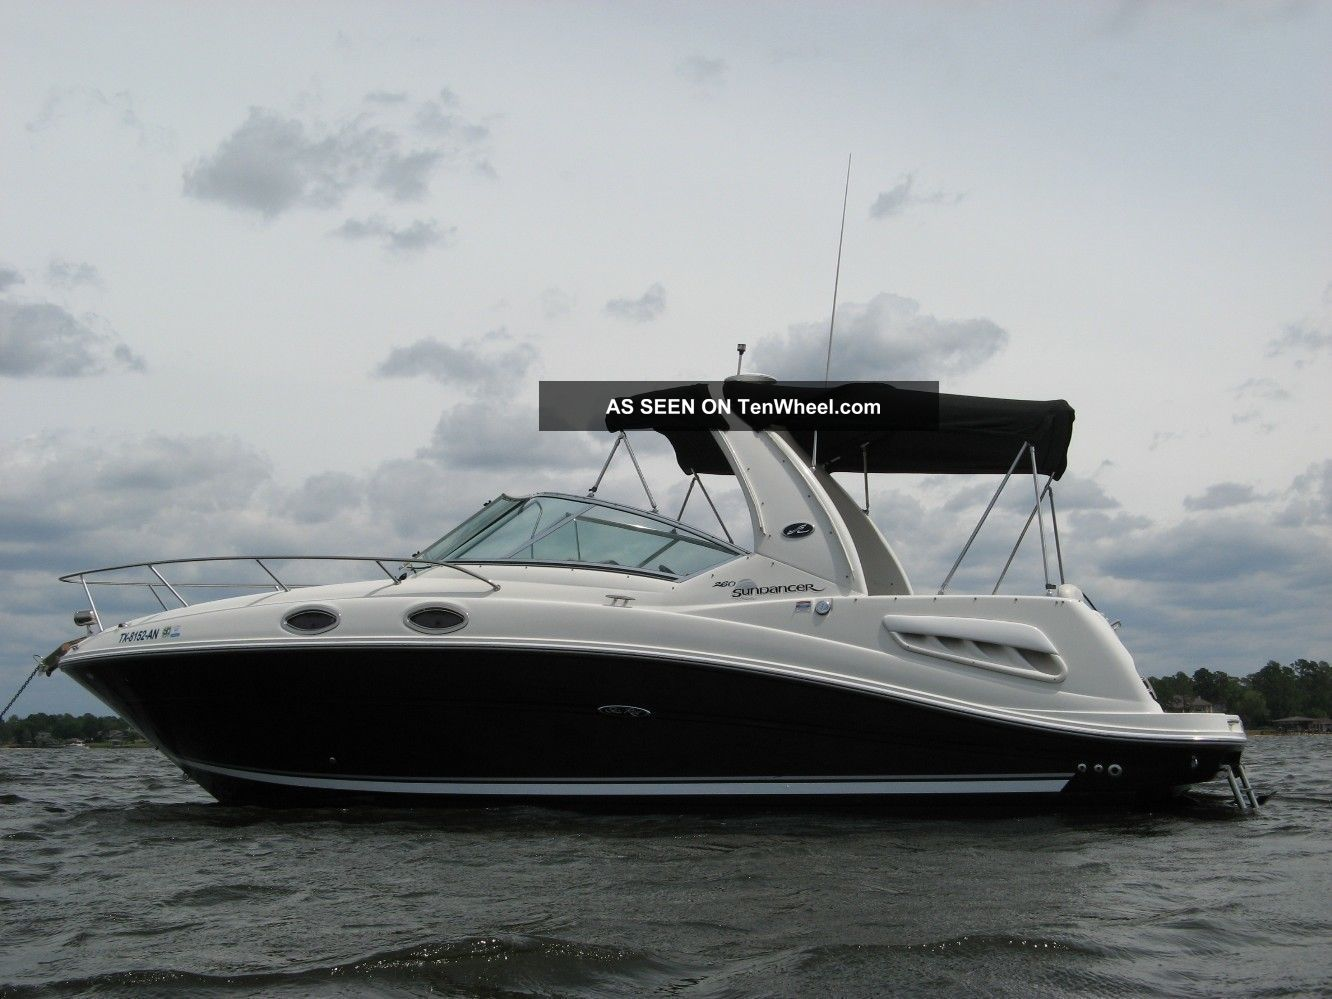 2007 Sea Ray Cruisers photo